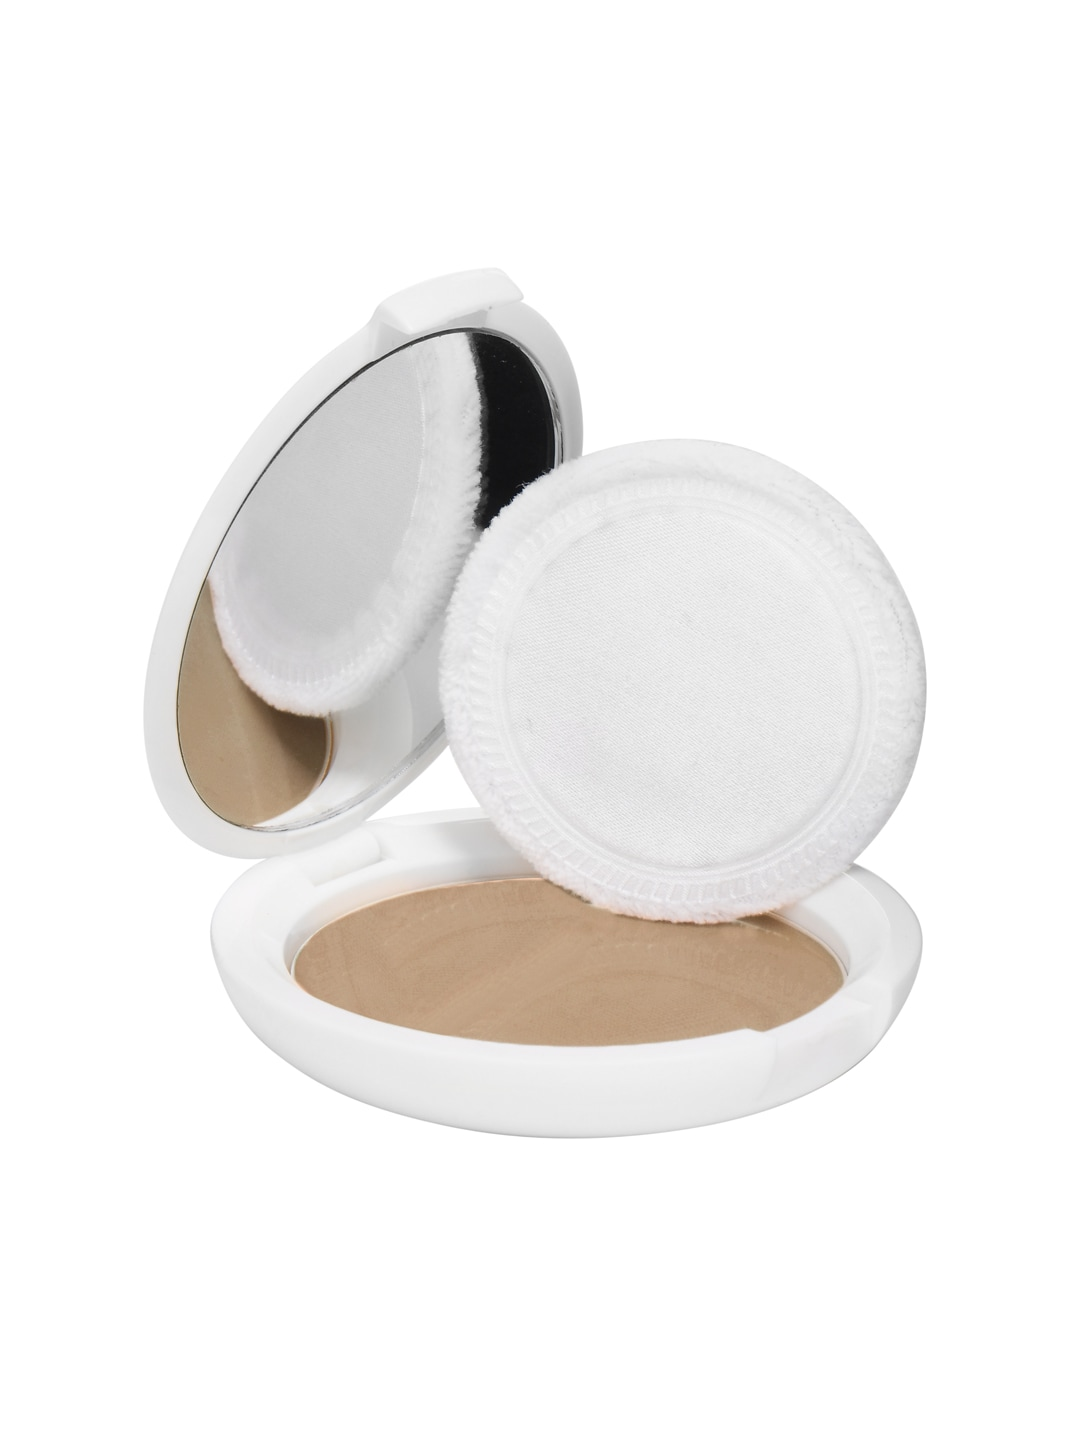 ColorBar Tan Radiant White UV Fairness Compact 005 image